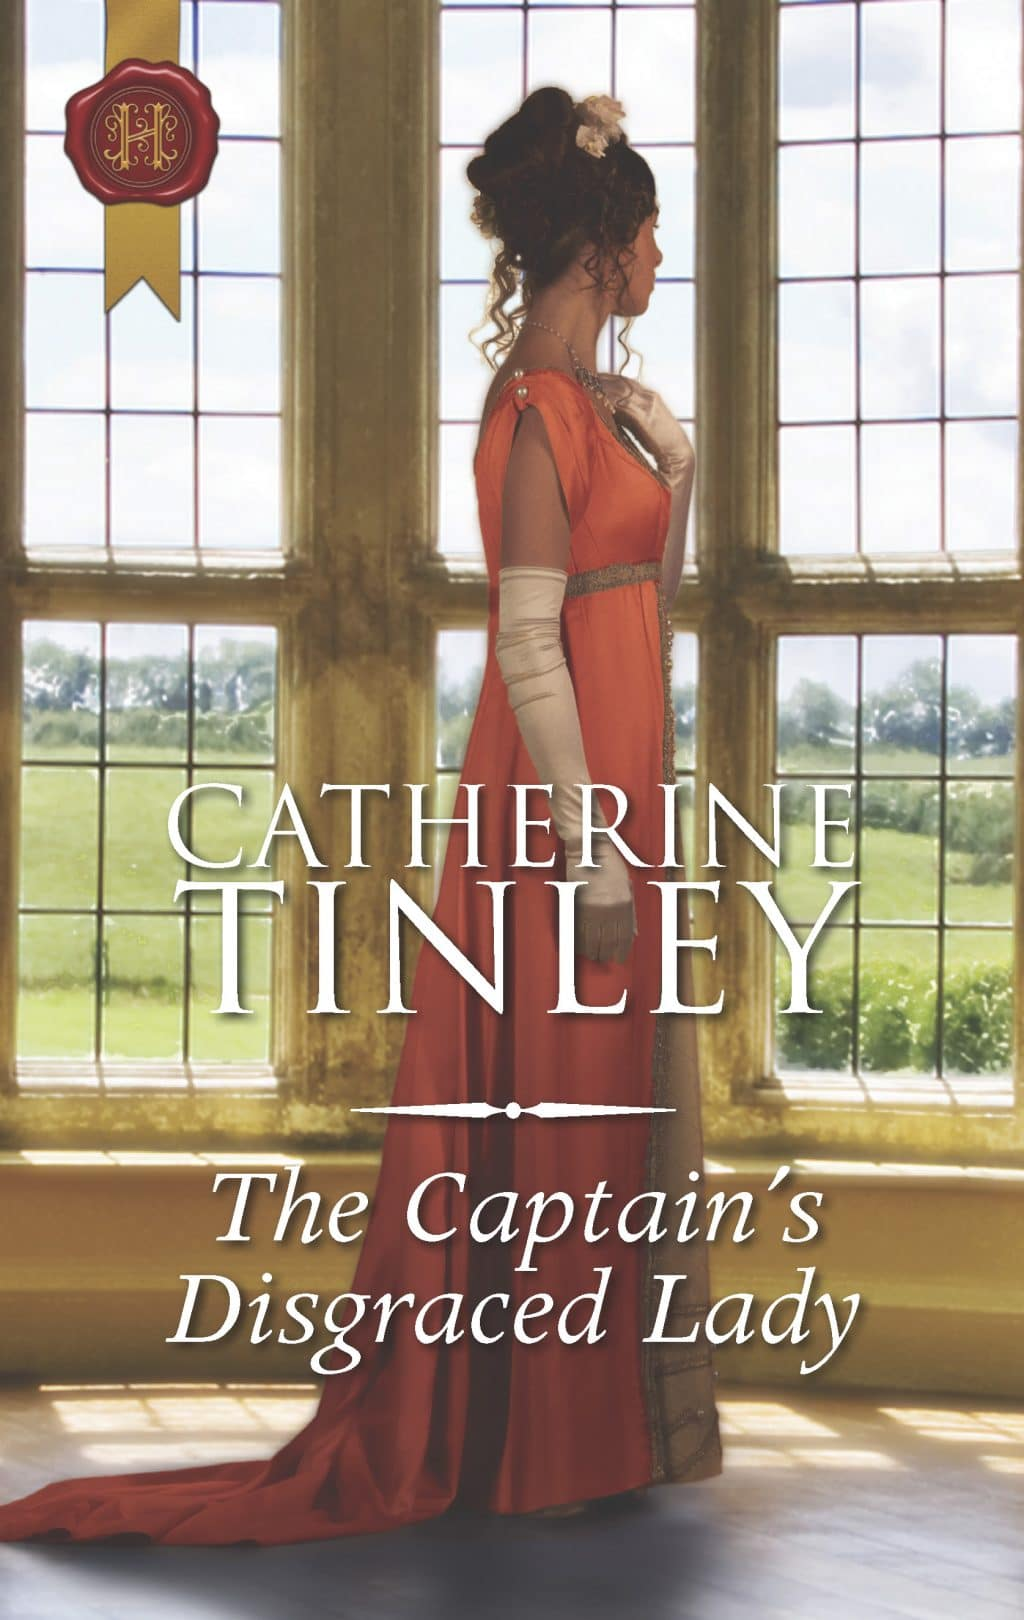 The Captain's Disgraced Lady